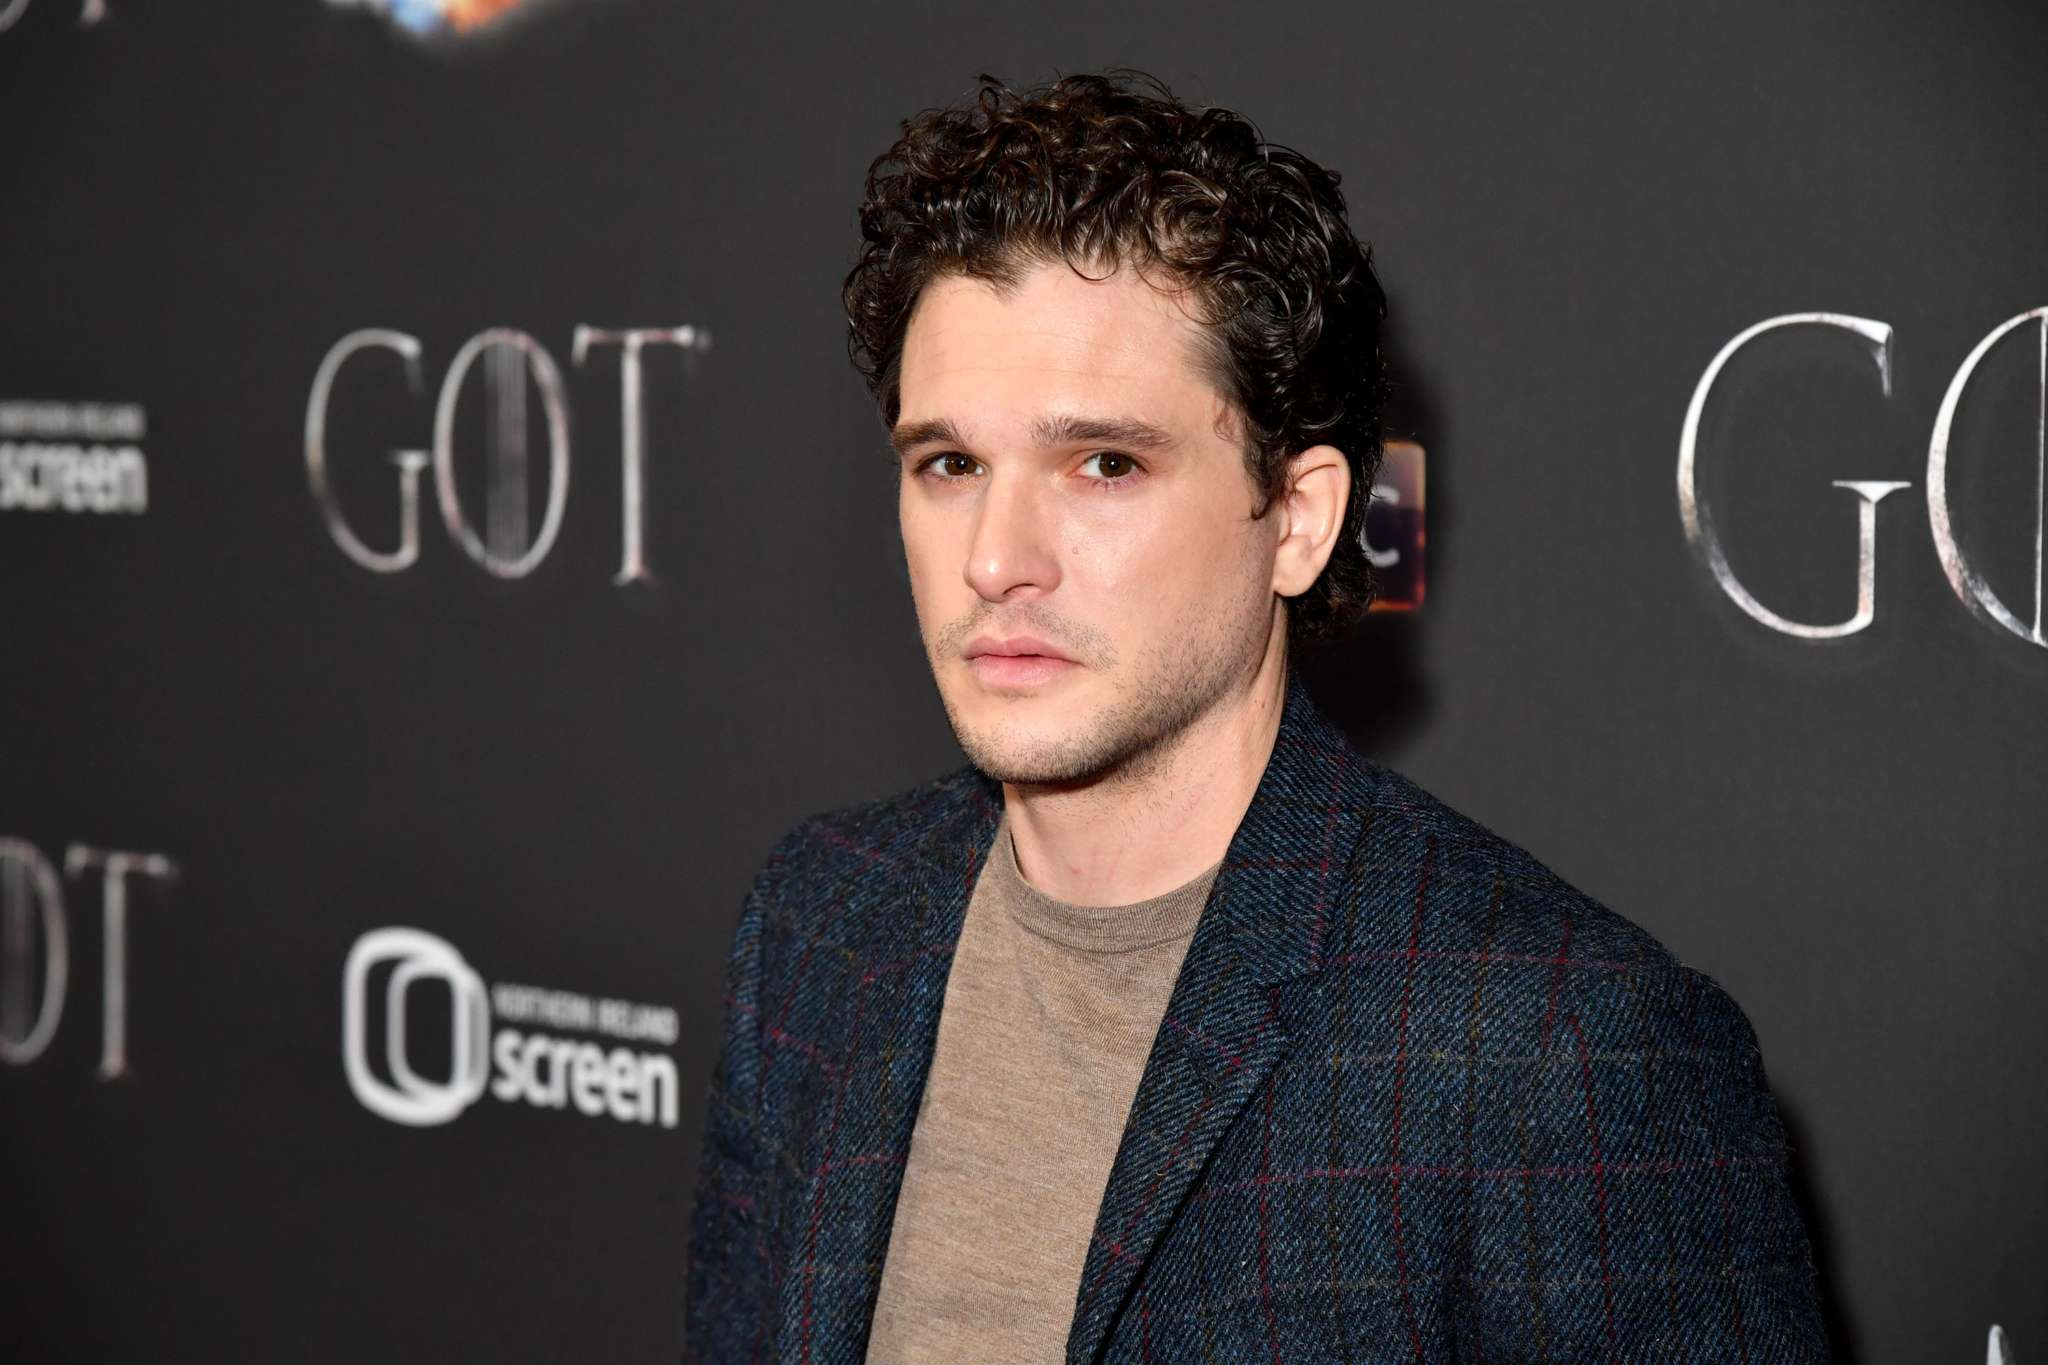 kit-harington-is-in-rehab-for-stress-and-reported-alcohol-problems-following-the-game-of-thrones-finale